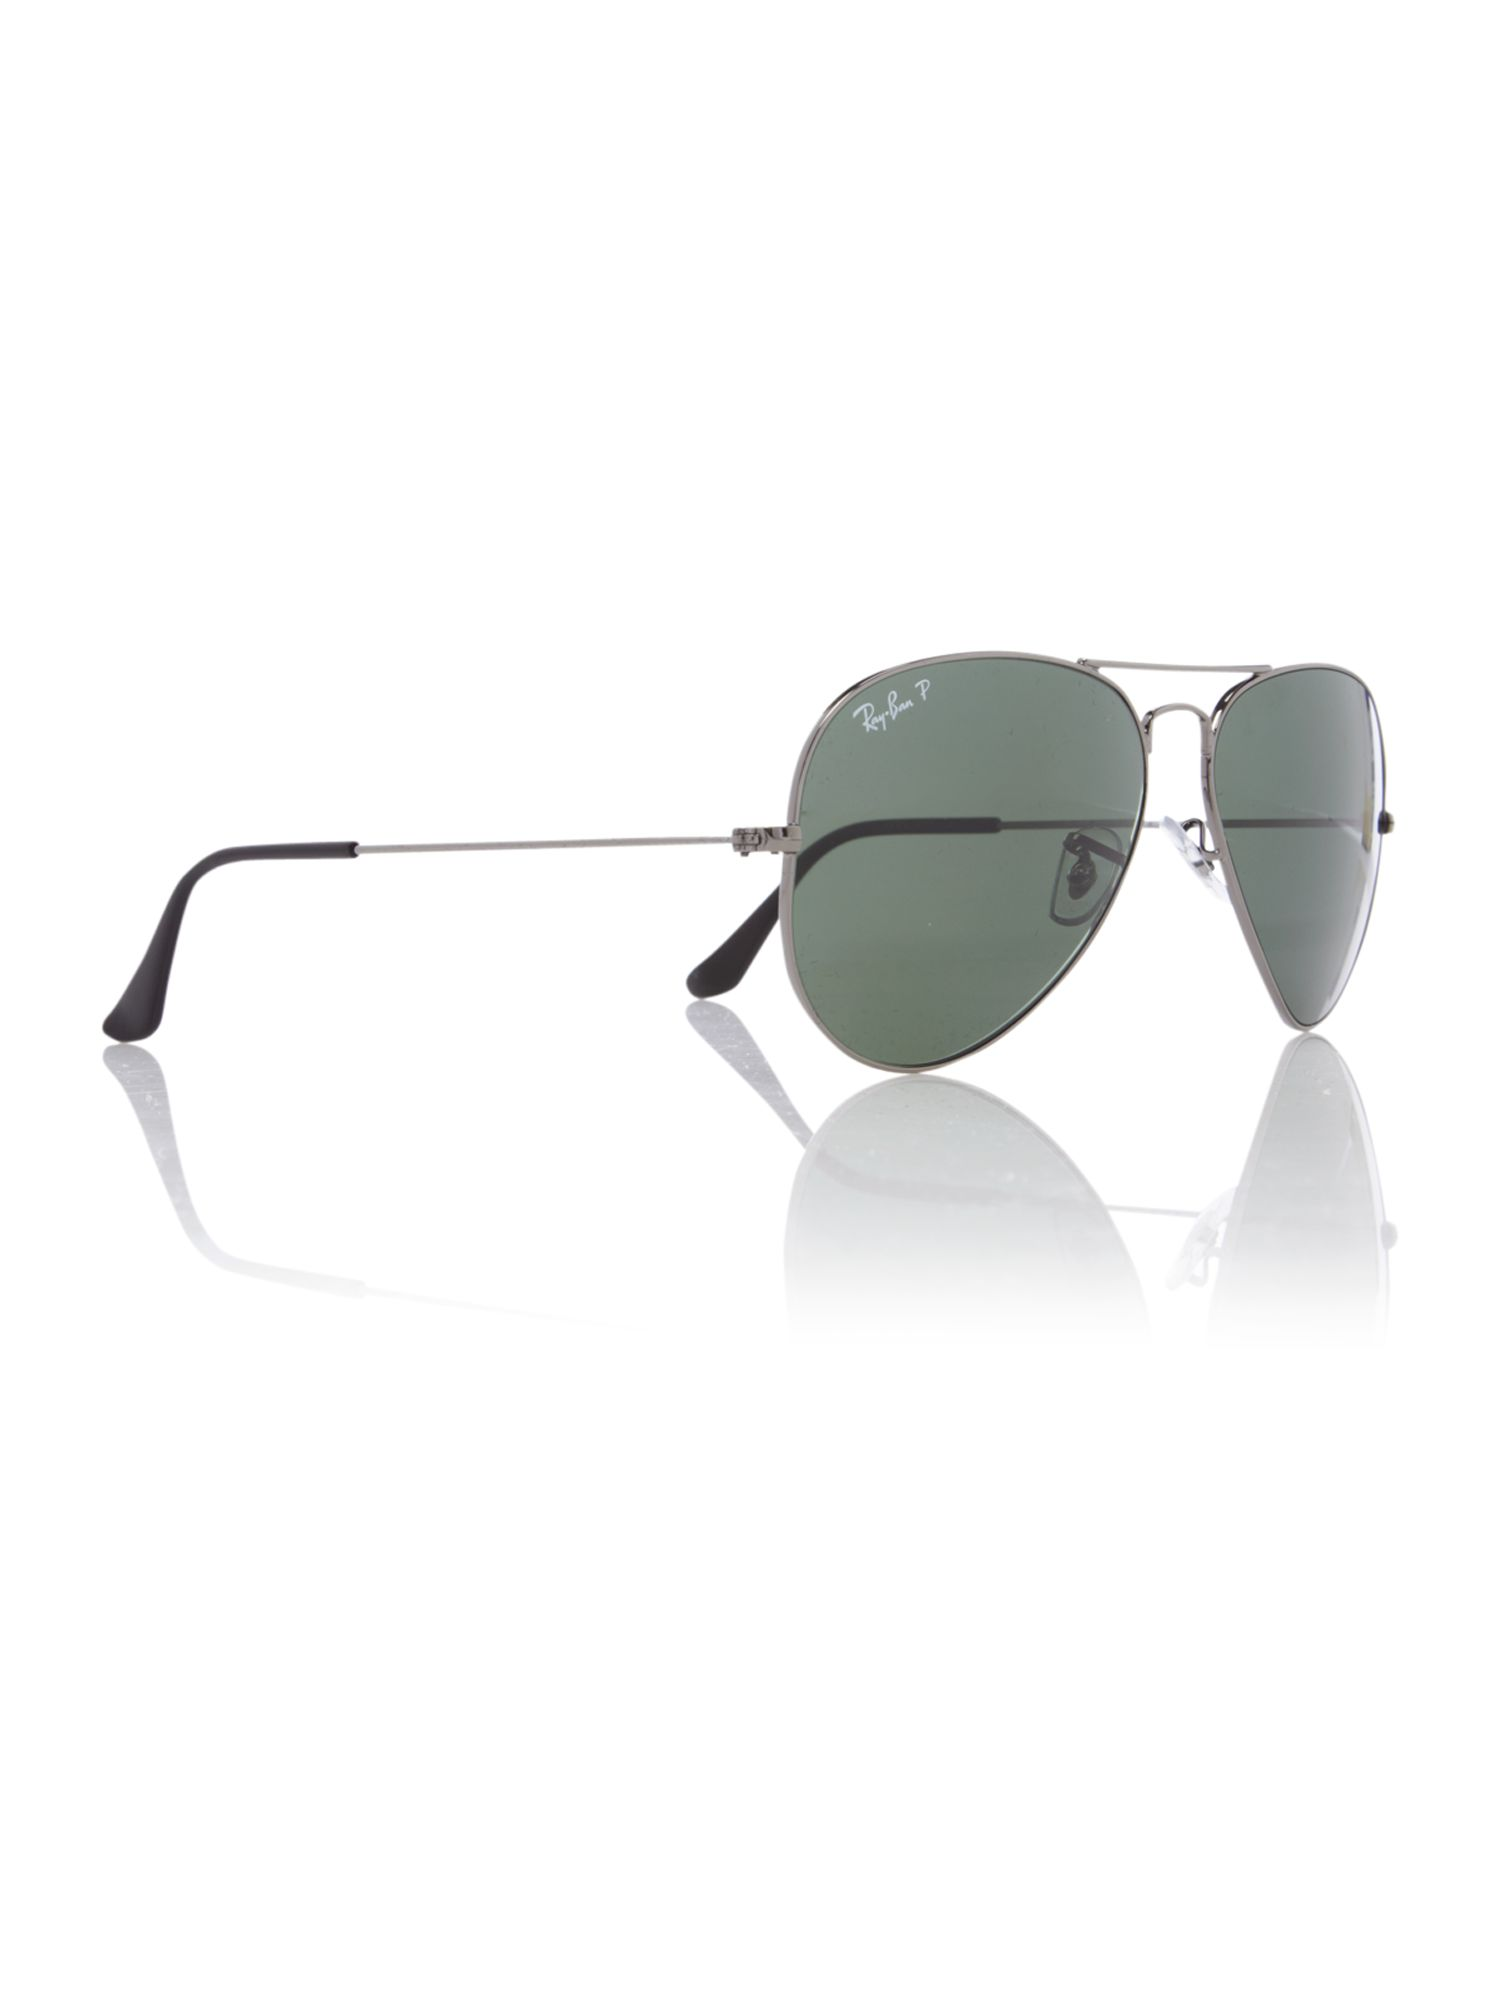 mirrored aviator sunglasses ray ban w45r  mirrored aviator sunglasses ray ban